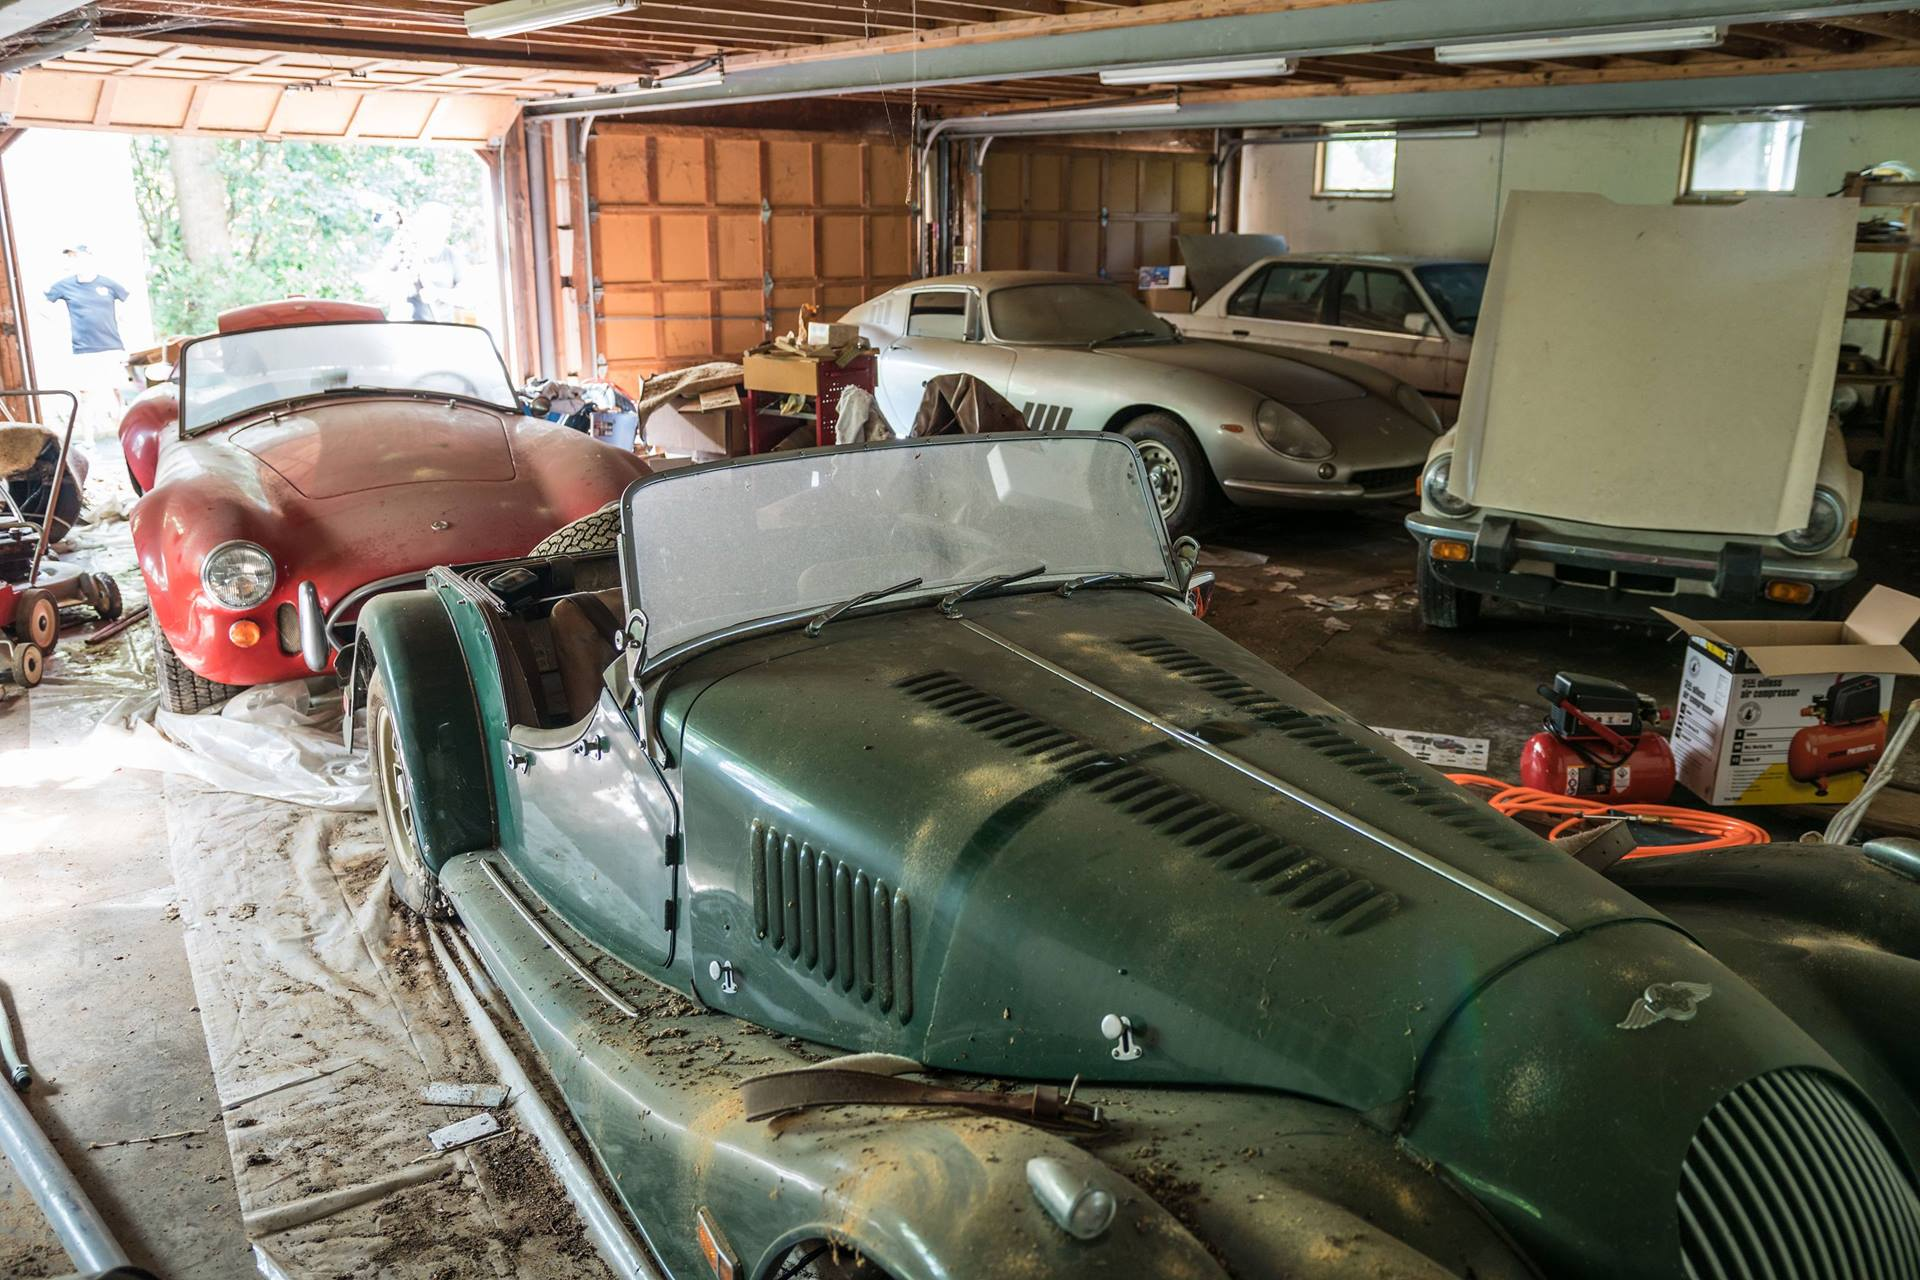 North Carolina Barn Find Is Not Your Average Pirate Treasure ...